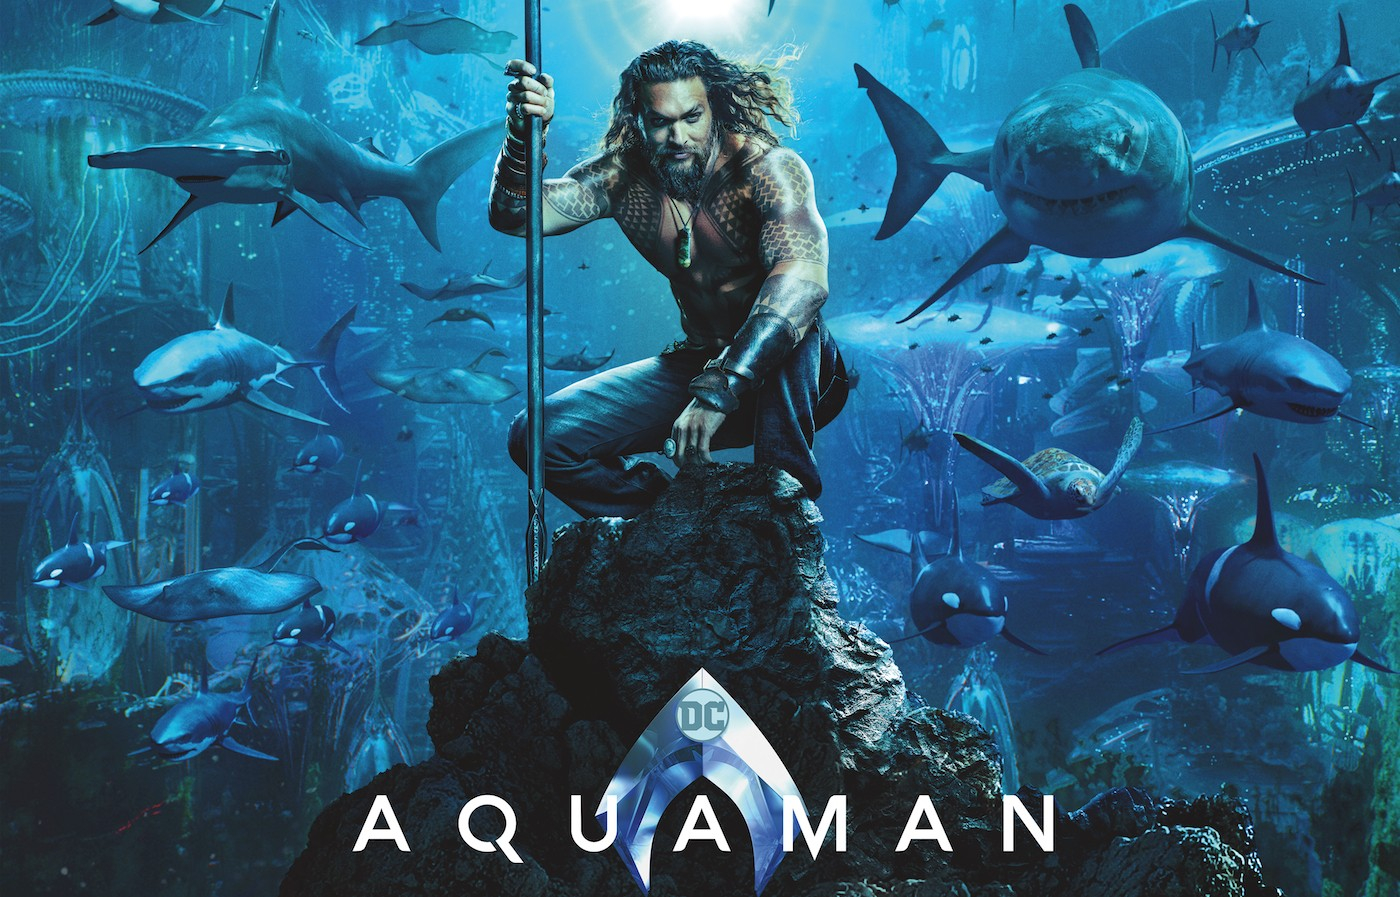 Review Aquaman Film Reviews Savannah News Events Restaurants